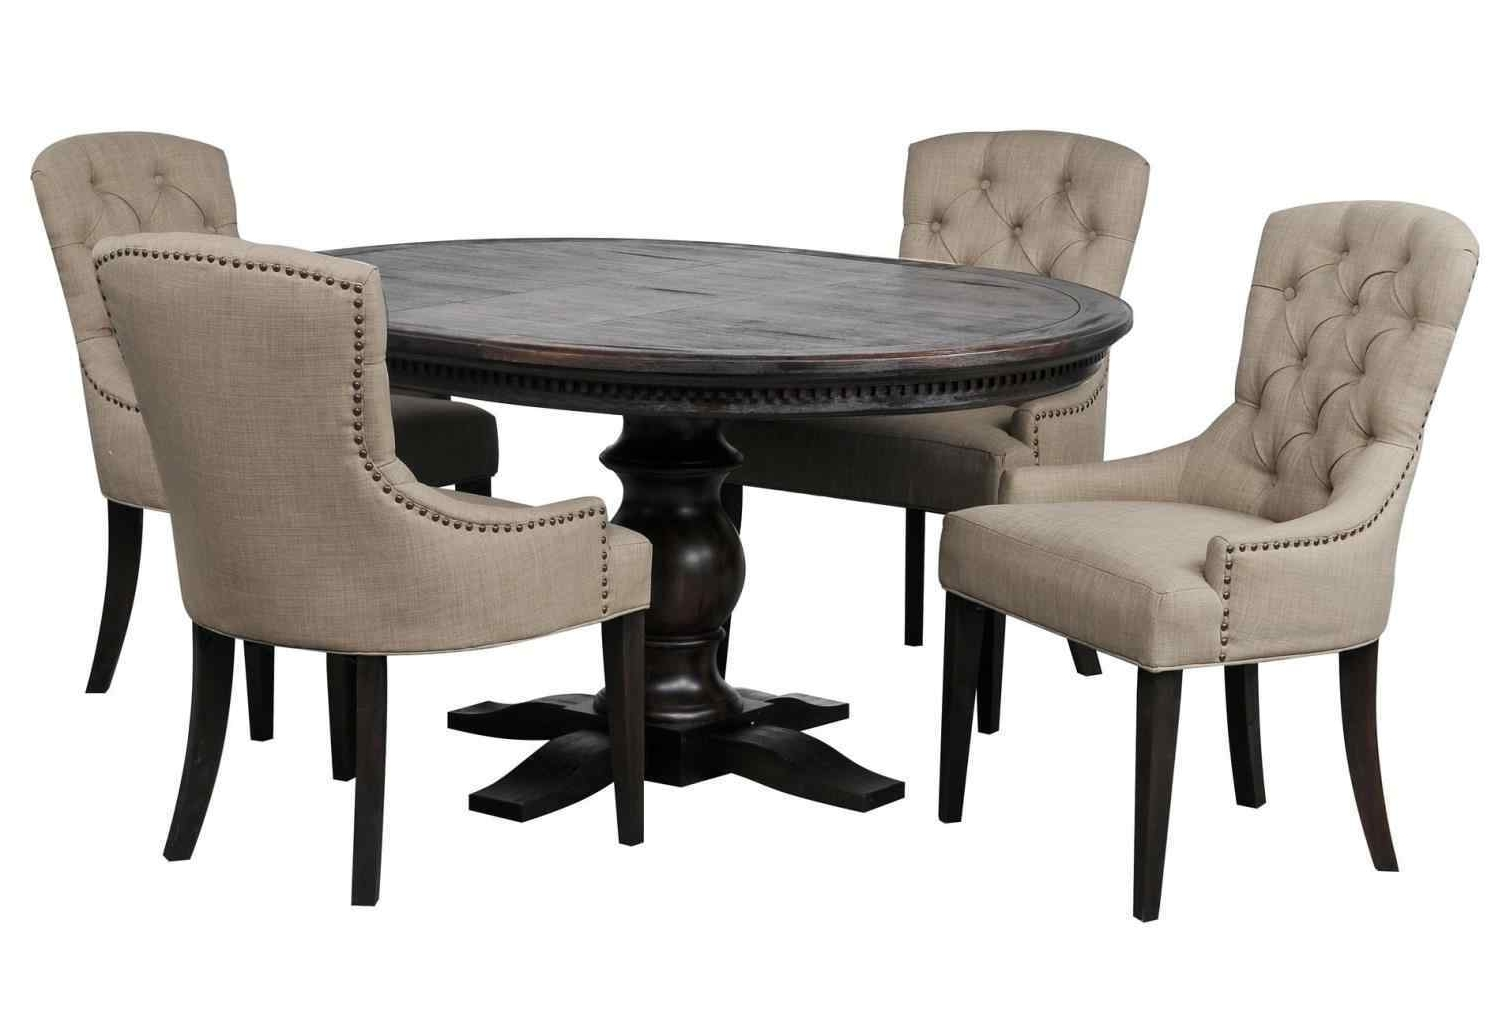 Living Spaces Dining Room Tables – Living Room Ideas Within Popular Caira Black 5 Piece Round Dining Sets With Diamond Back Side Chairs (View 12 of 25)